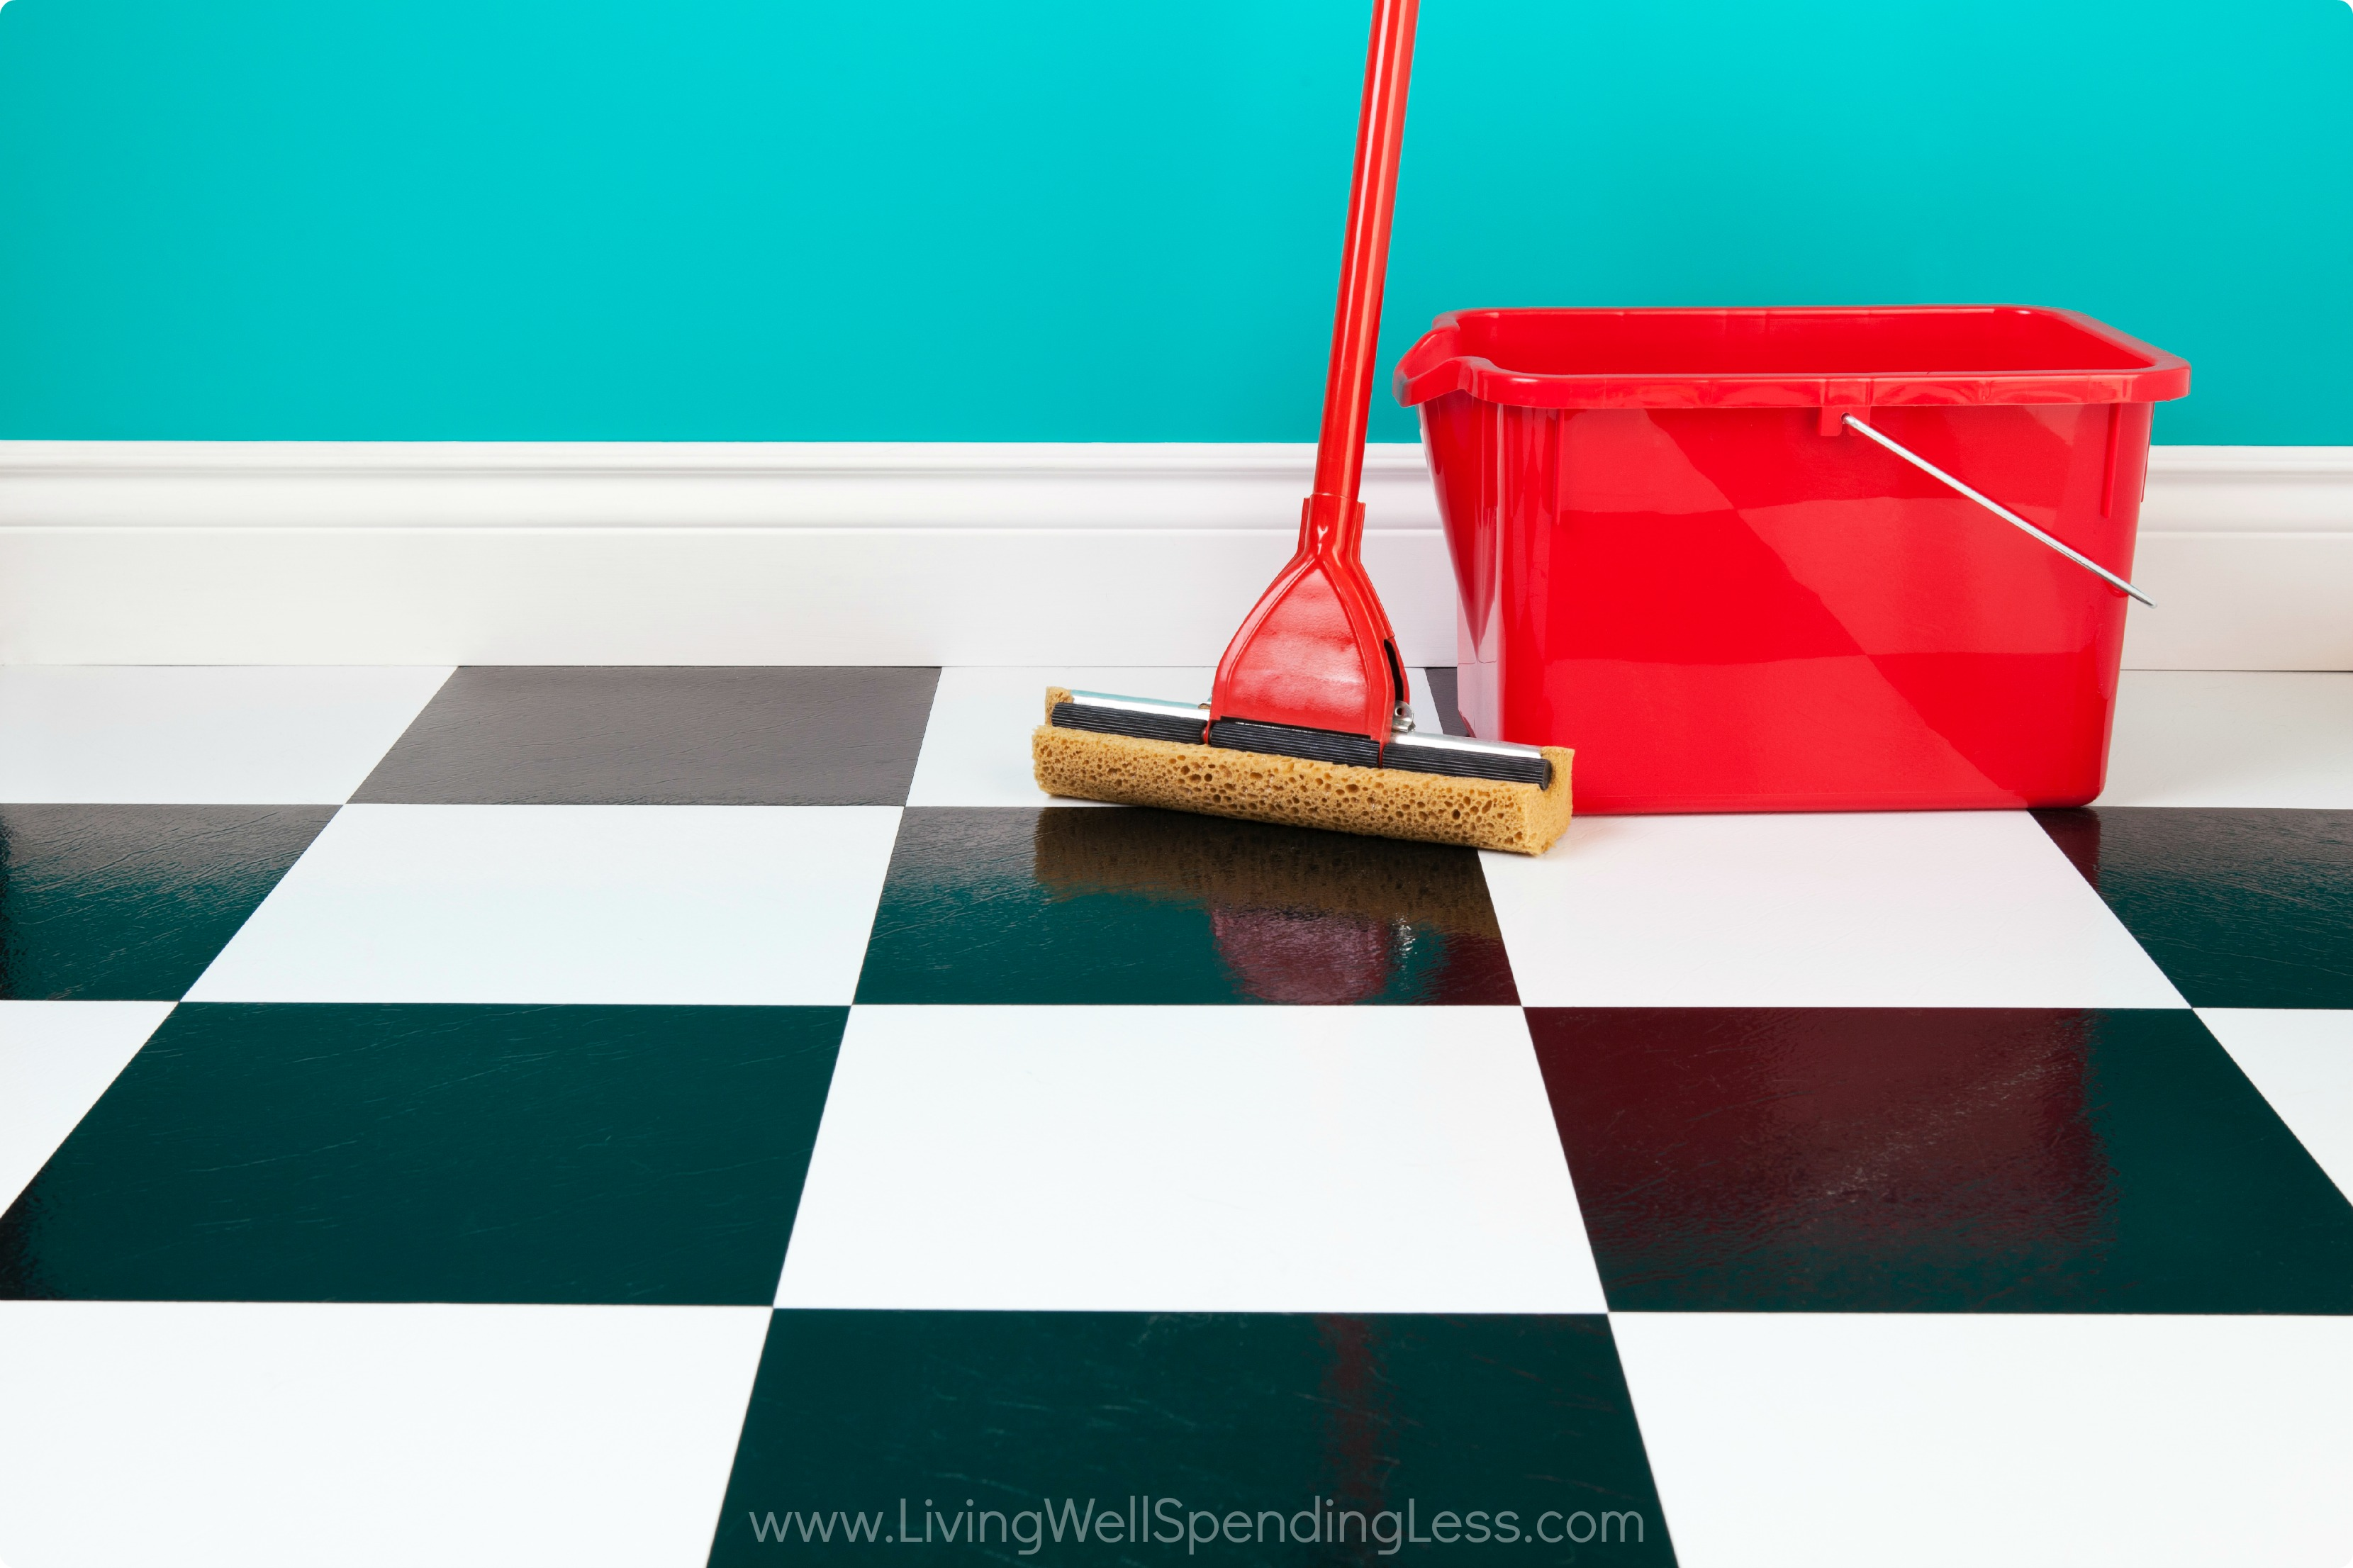 Cleaning floor living well spending less for Floor cleaning